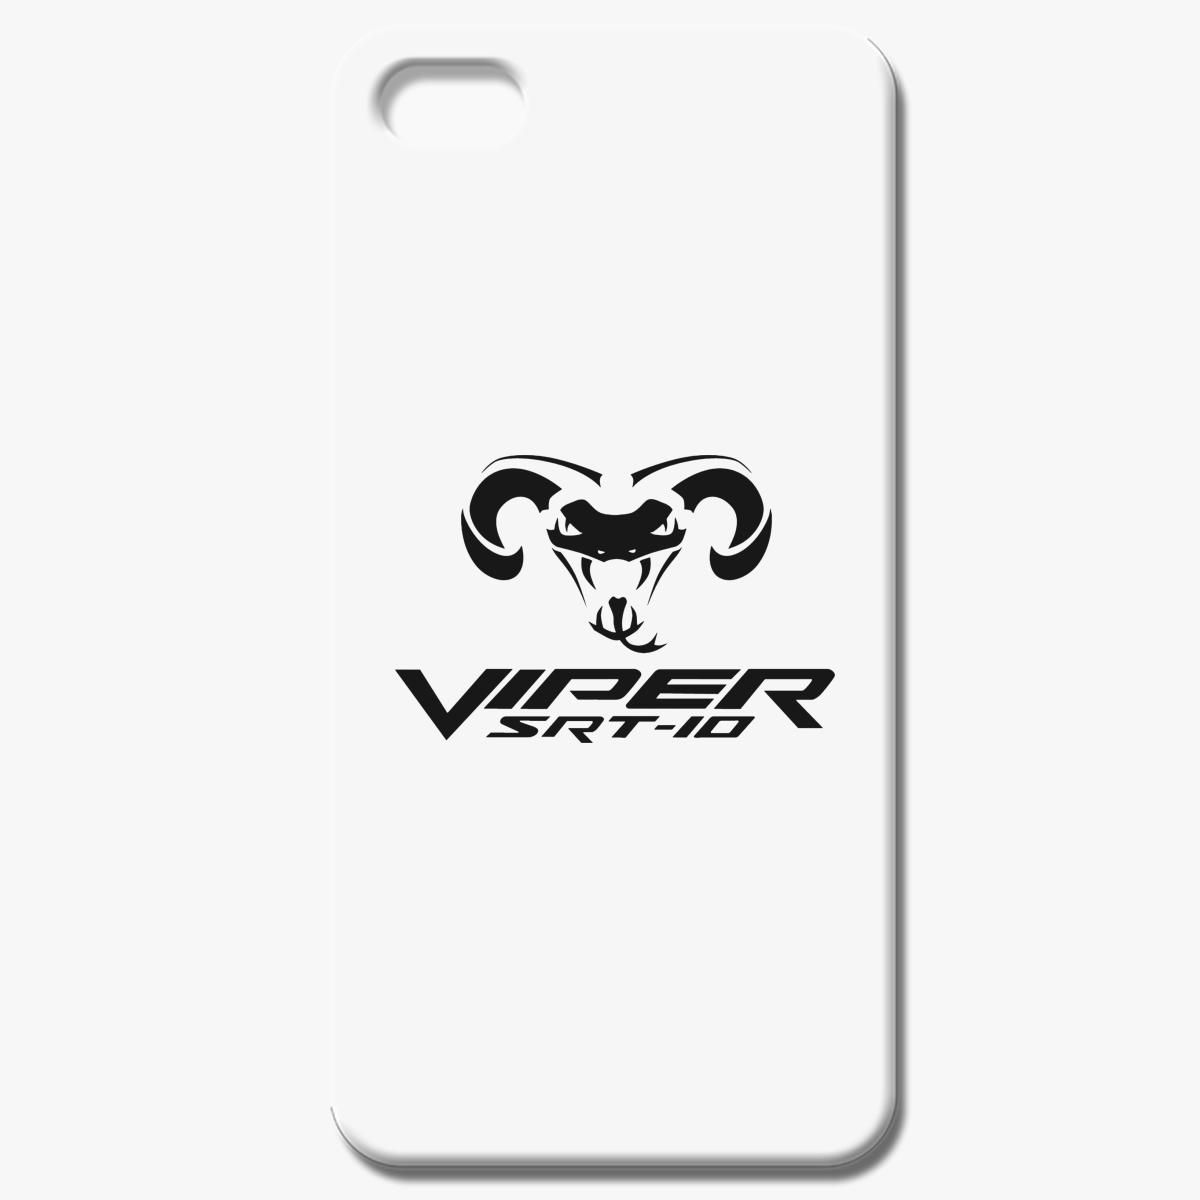 Viper Srt Iphone 7 Case